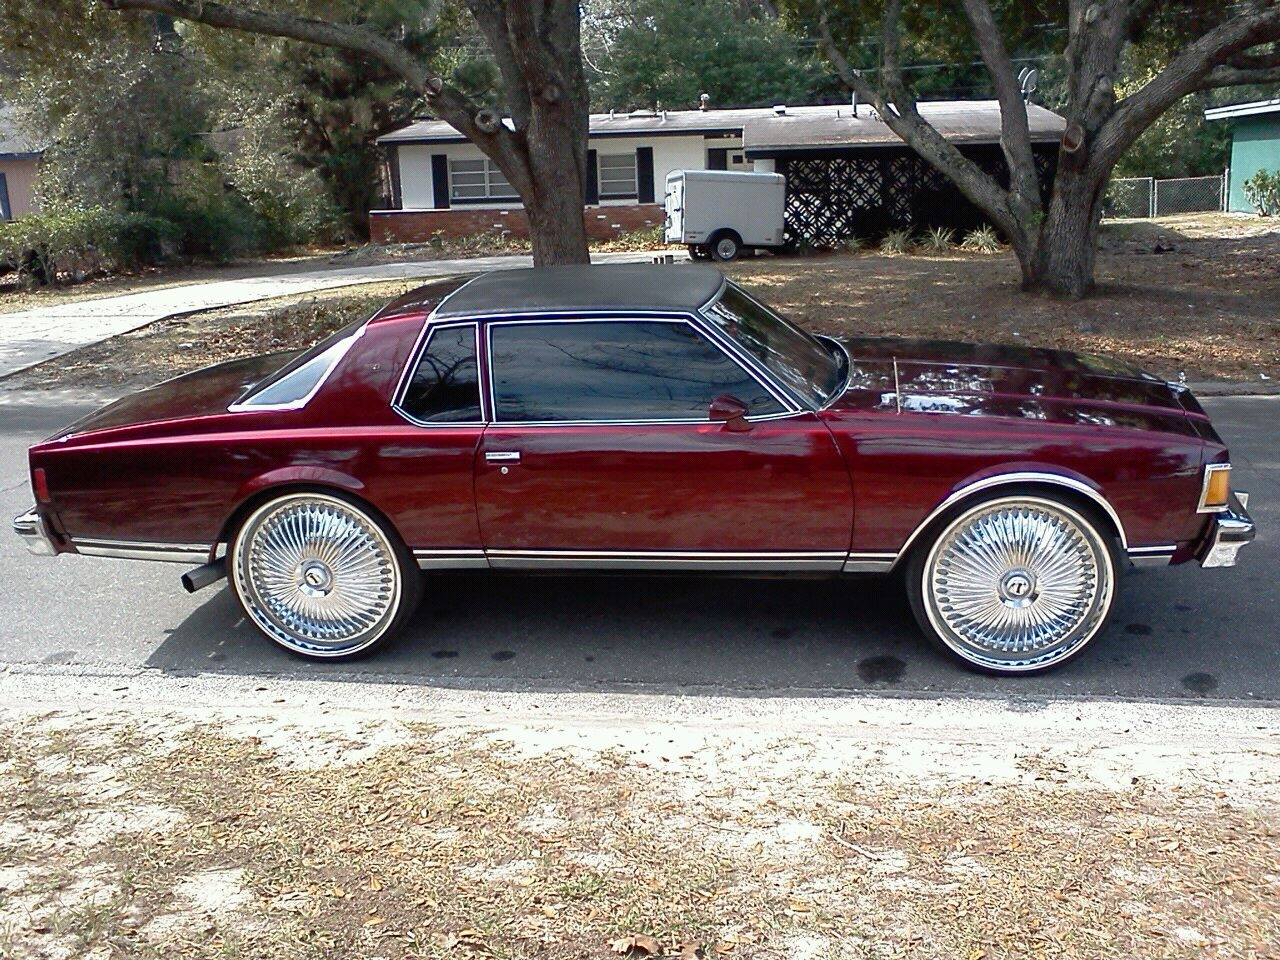 hight resolution of larryd 8829 1986 chevrolet caprice classic